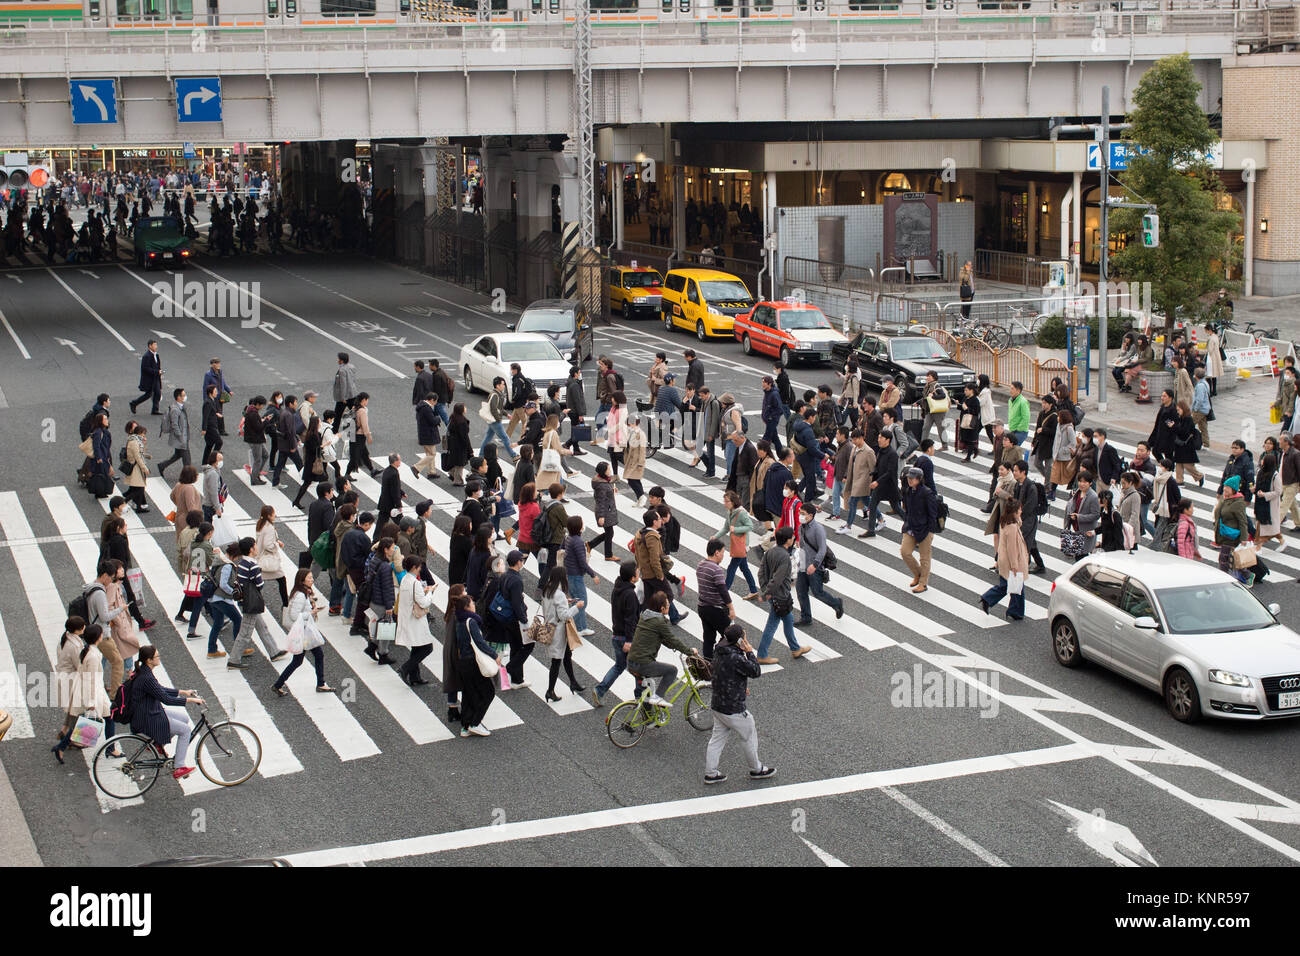 A scramble road crossing in Tokyo - Stock Image